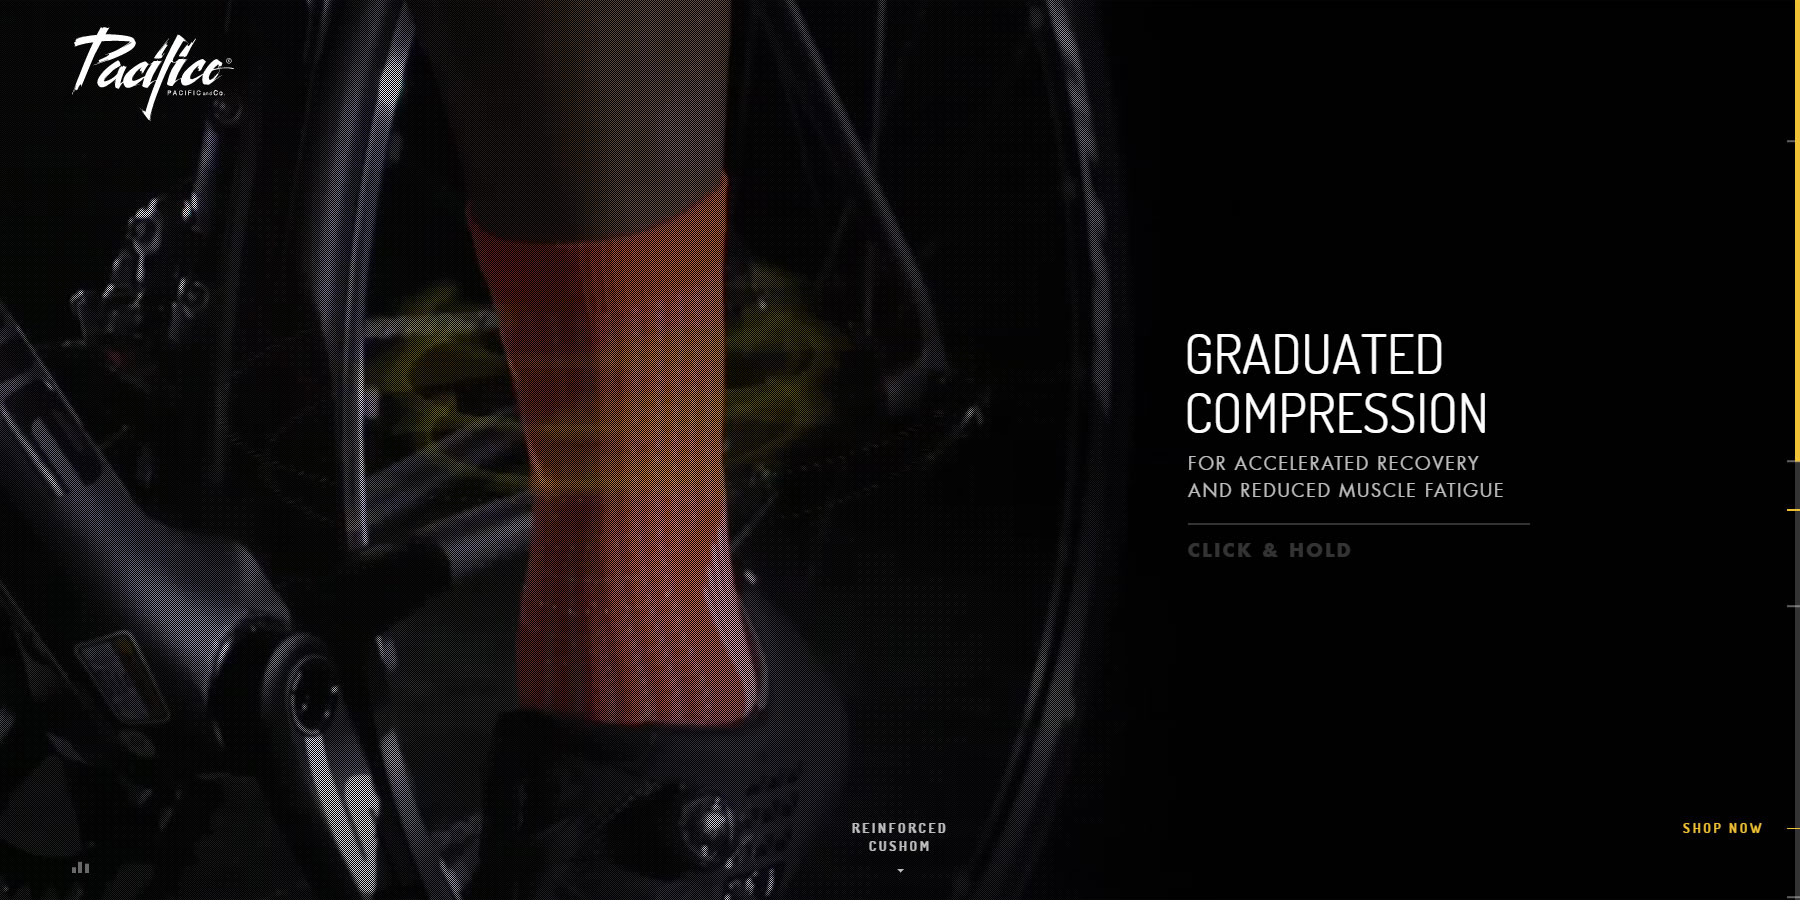 Performance Socks - Pacific&Co - Website of the Day